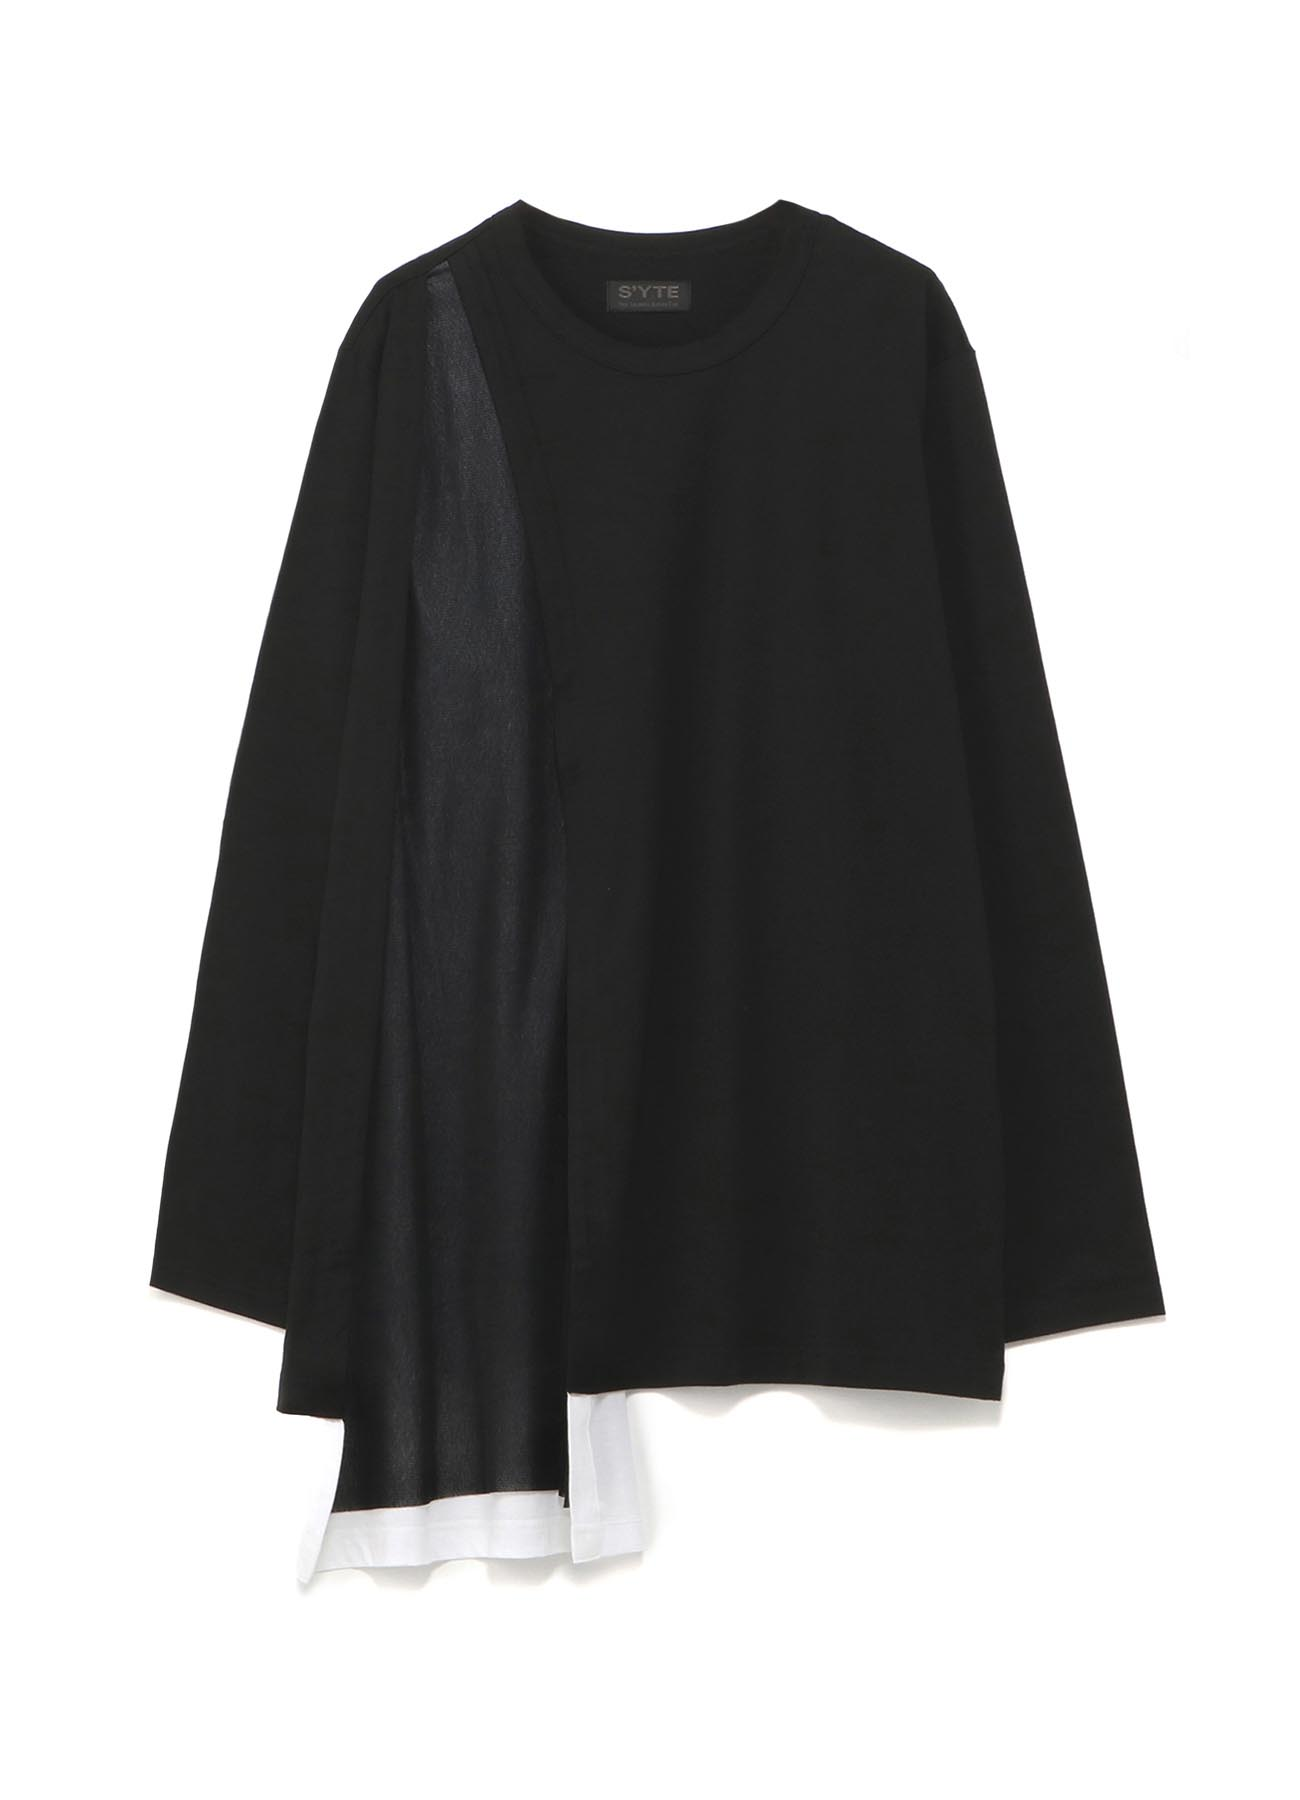 40/2 Cotton Jersey Tulle layered asymmetry drape T-shirt